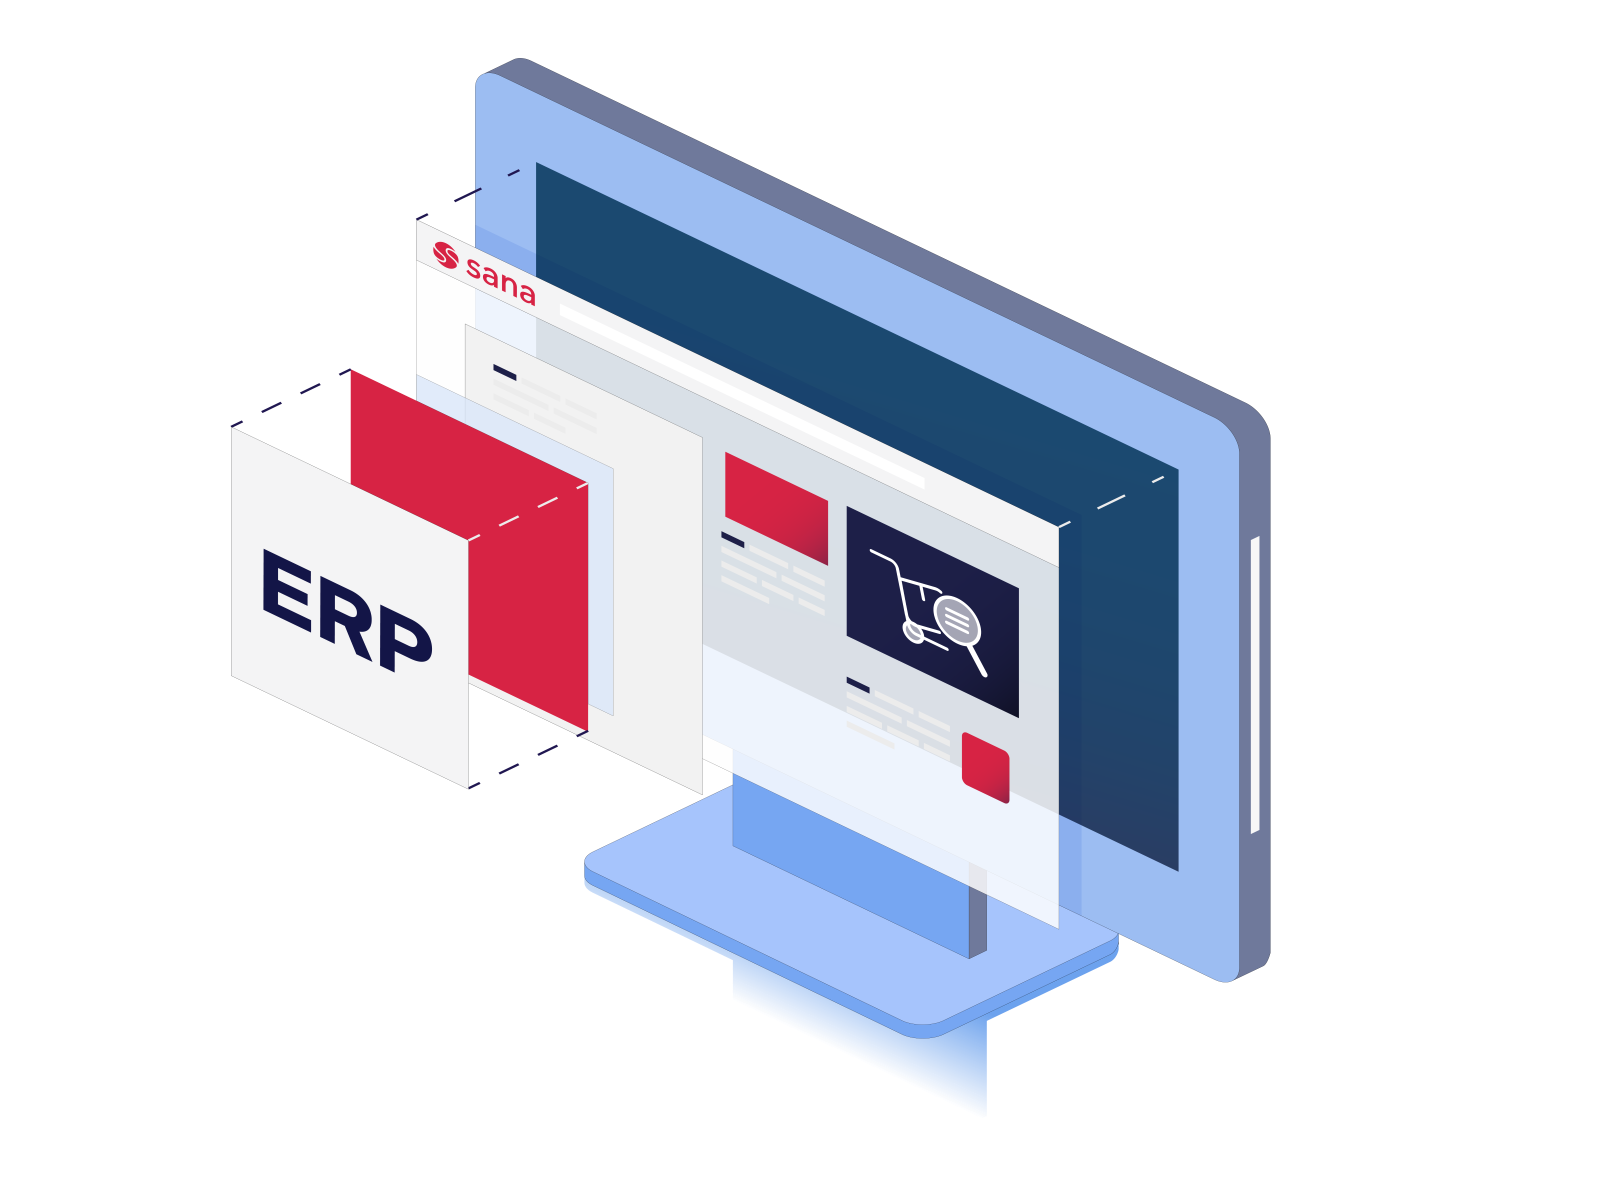 Sana Commerce's integrated ERP in a graphic